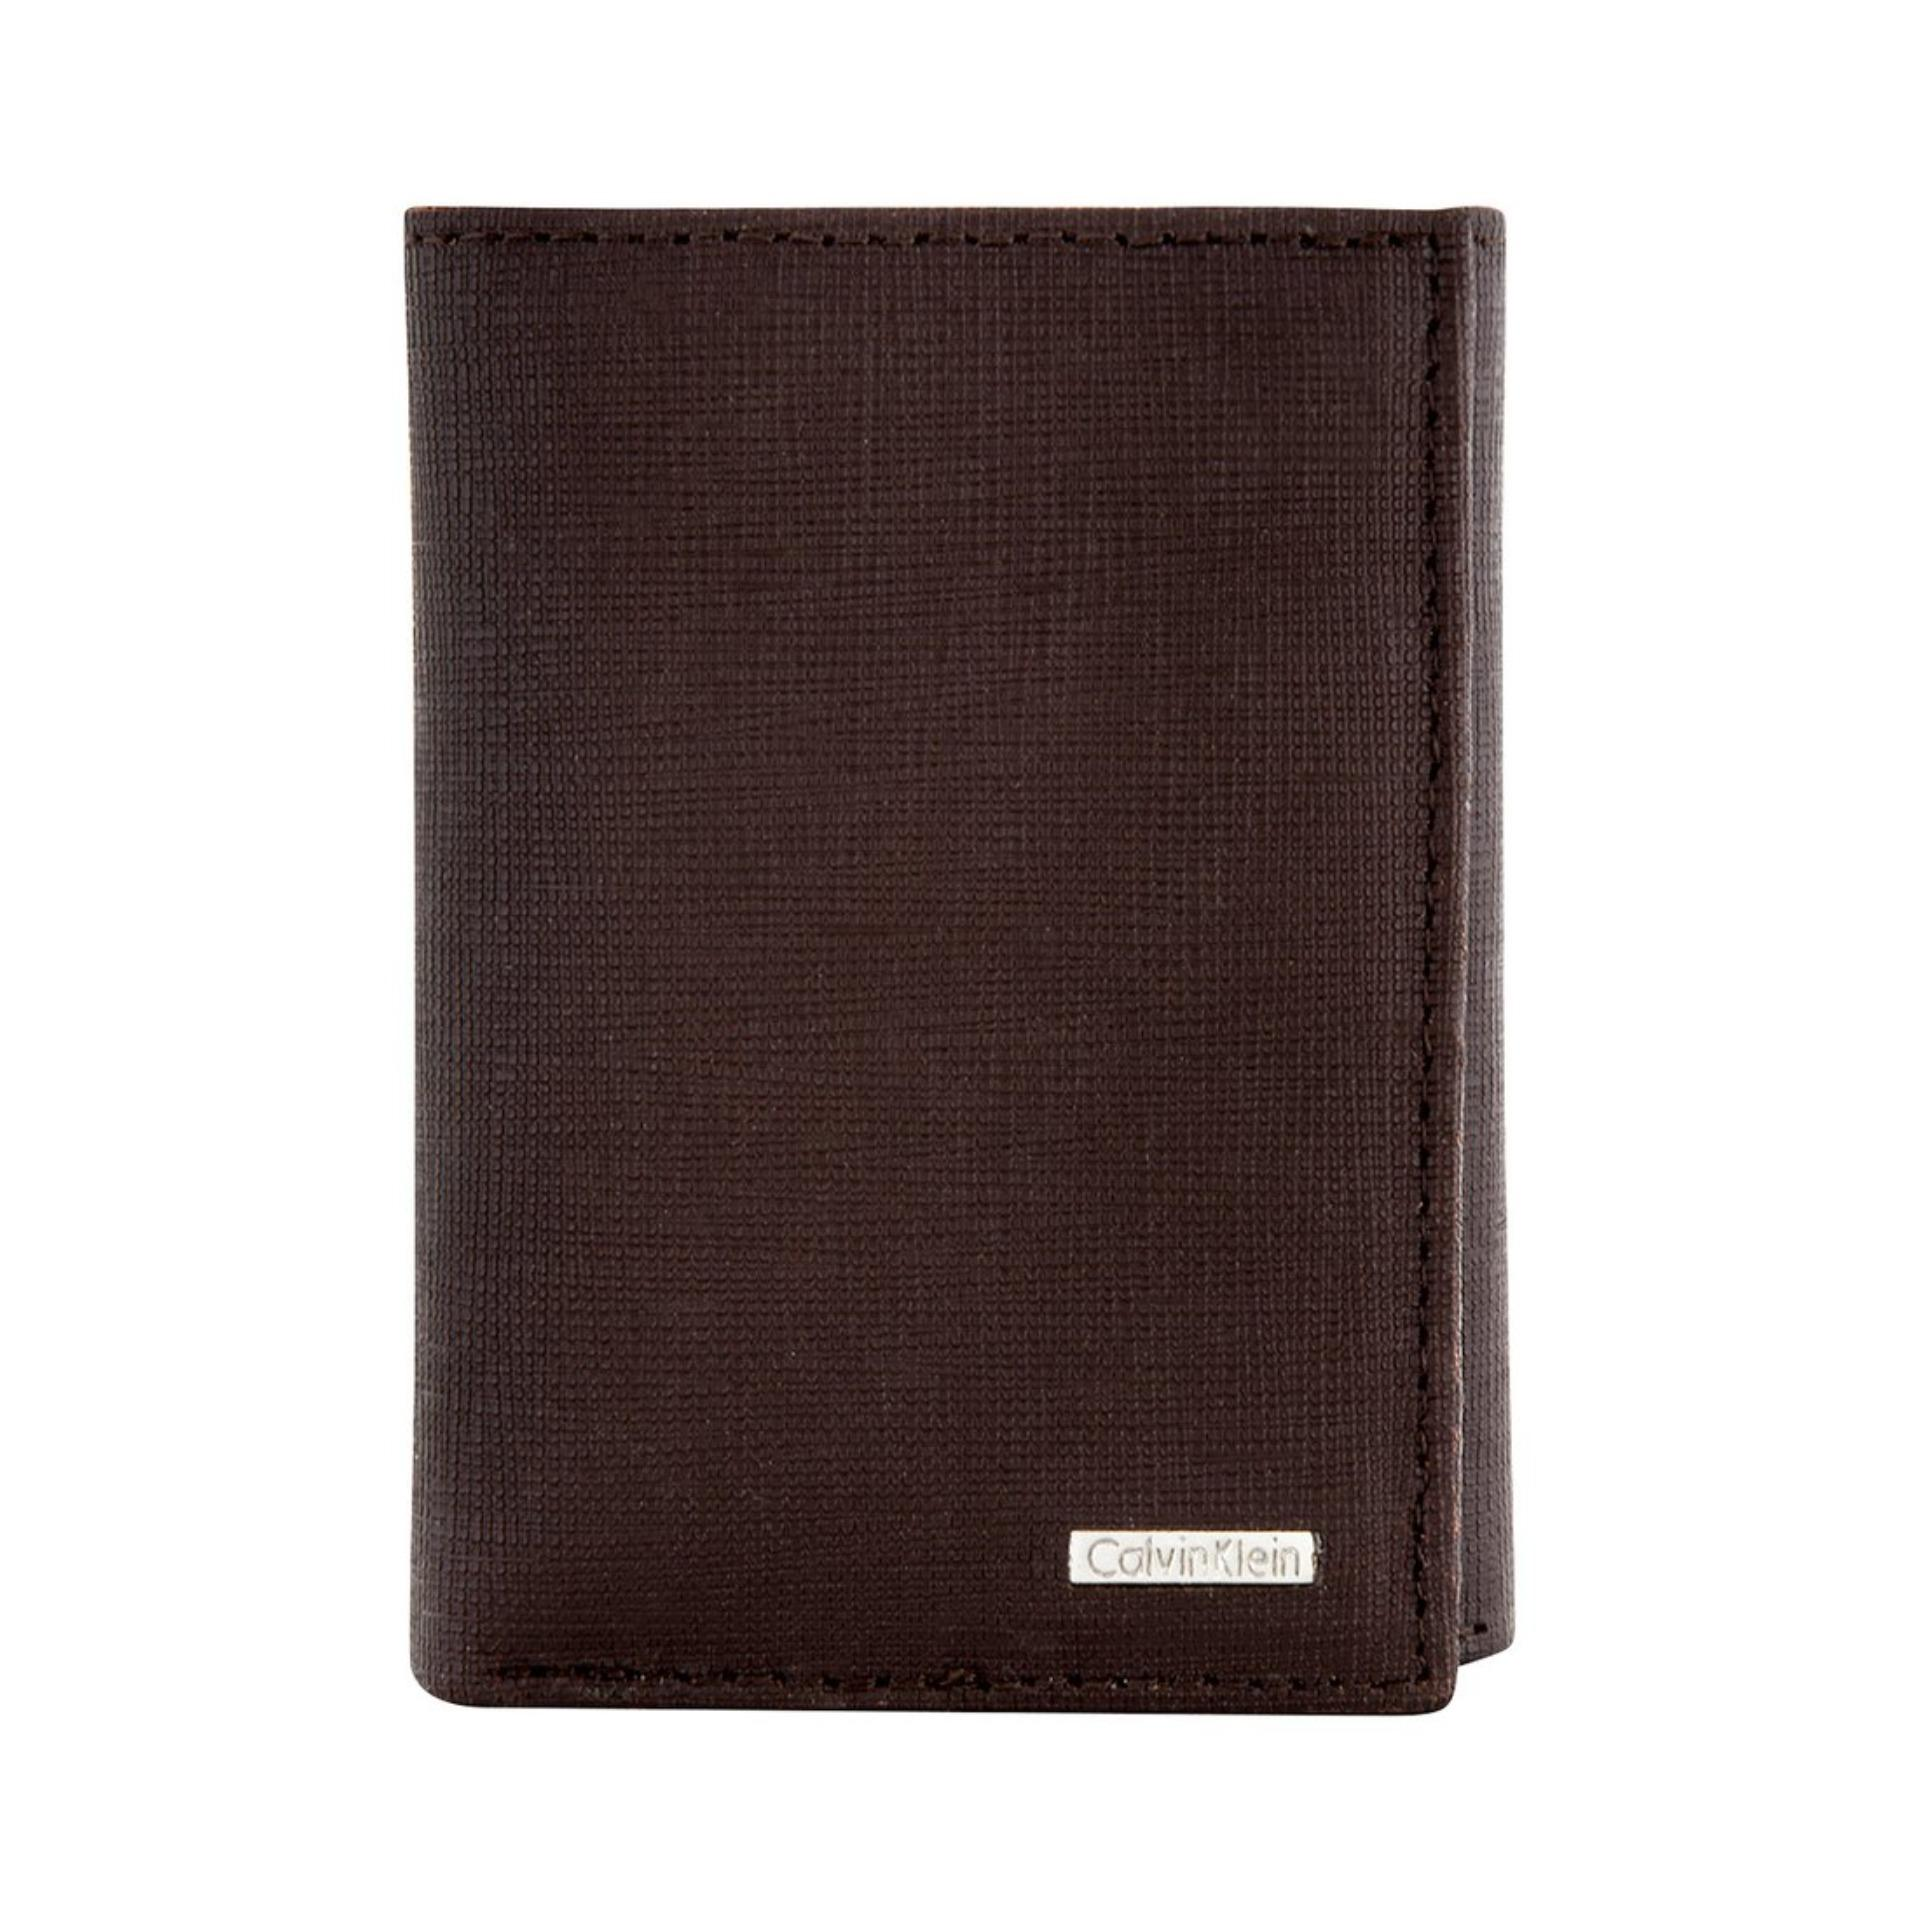 Calvin Klein Leather Trifold Wallet - Brown Grain